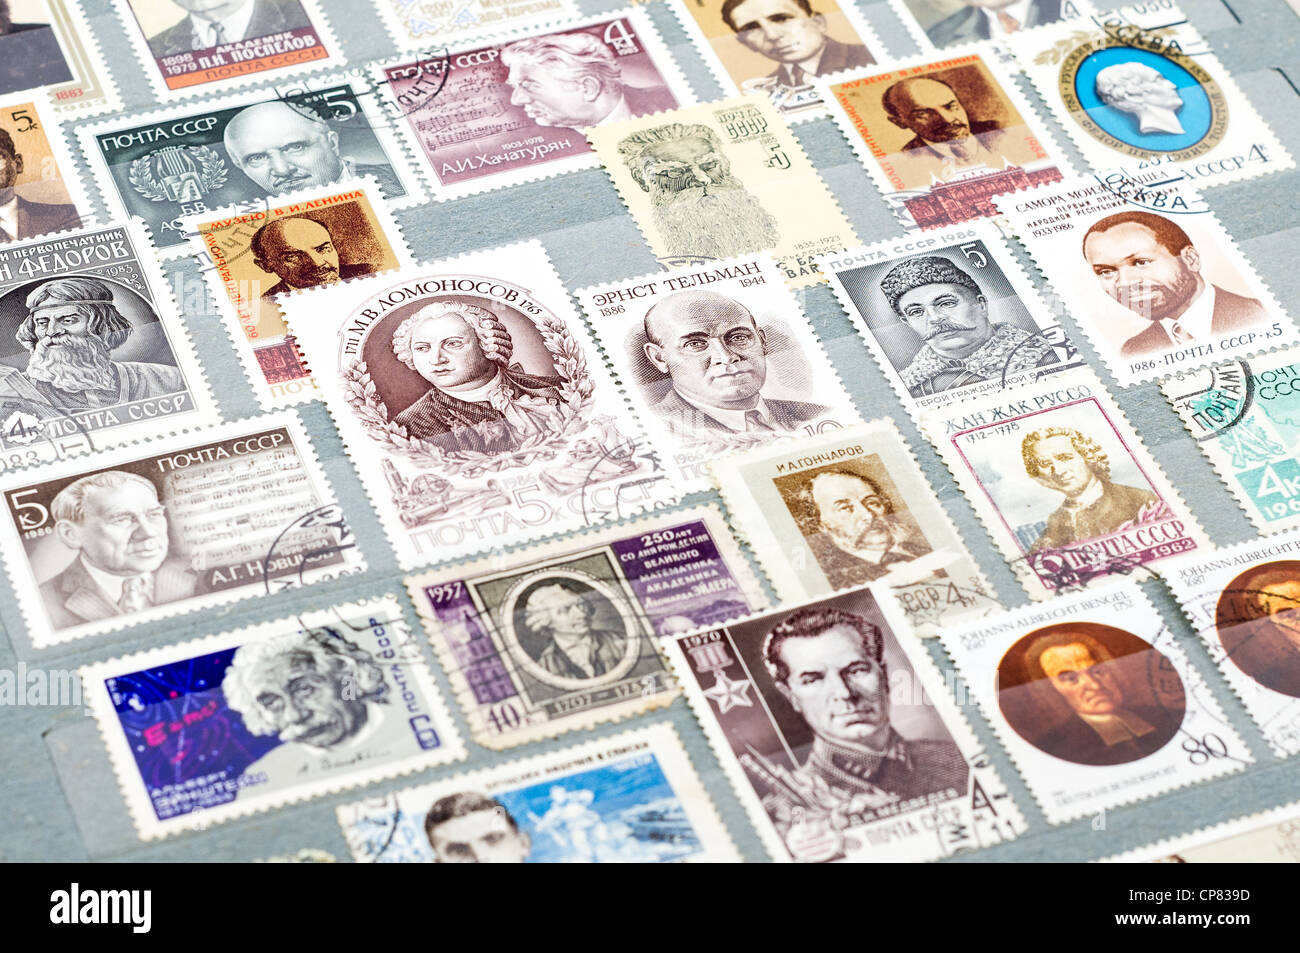 Vintage CCCP (Russia) postage stamps in book Stock Photo